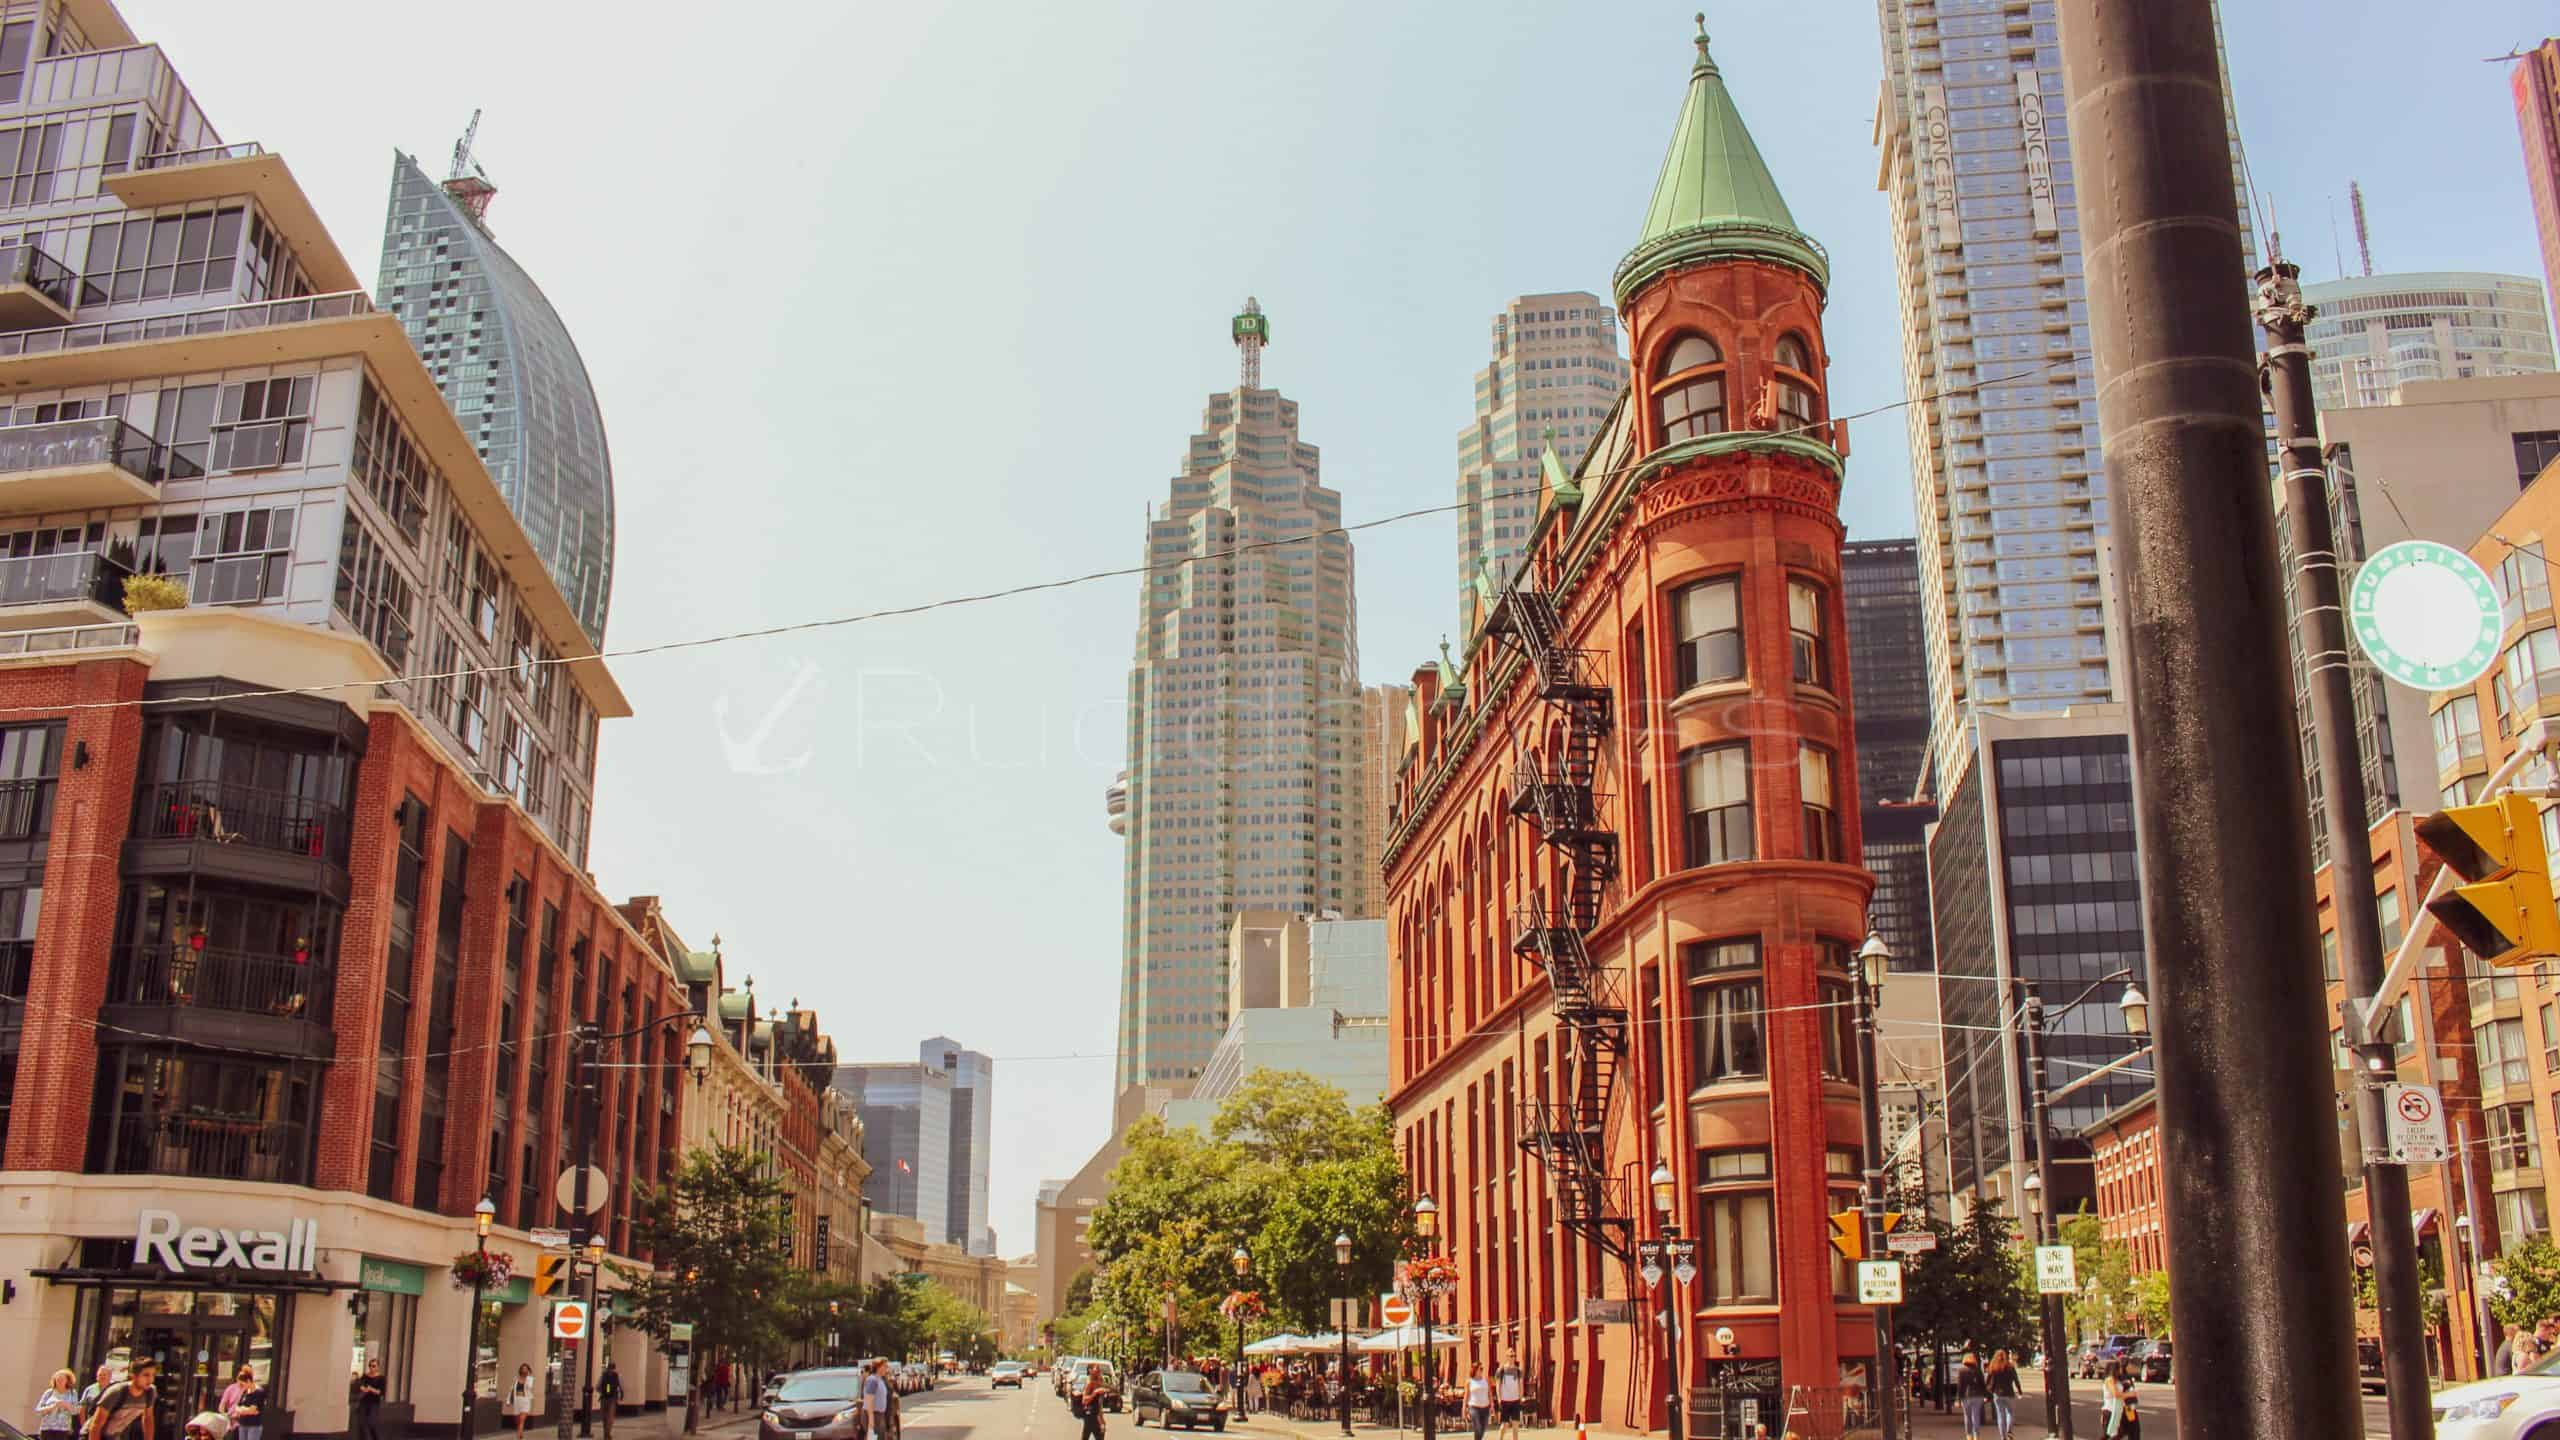 gooderham building - toronto points of interest